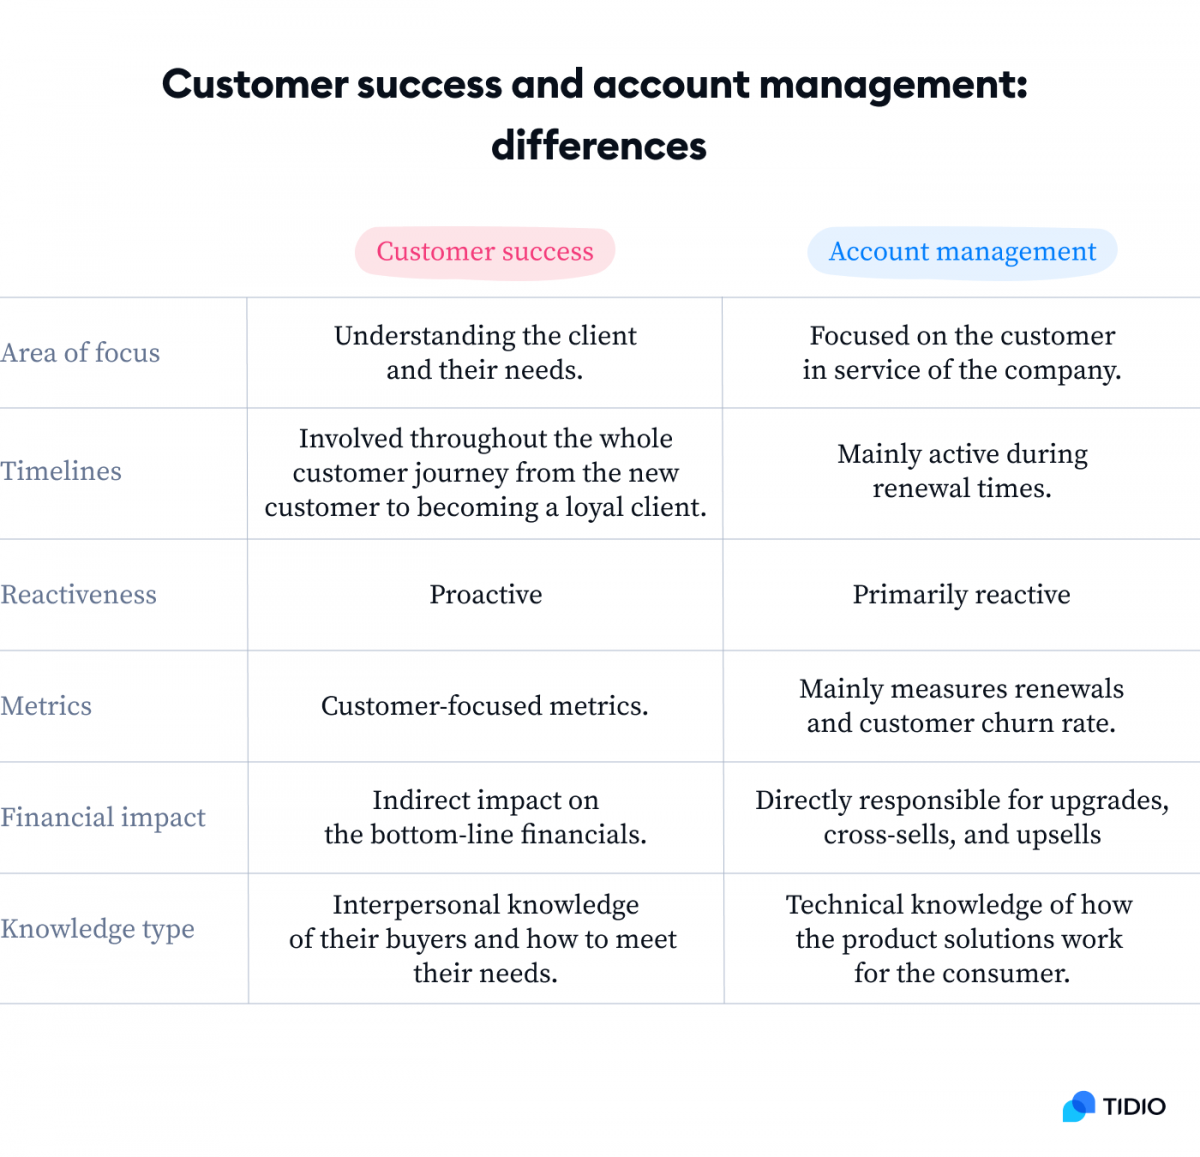 Customer success and account management differences